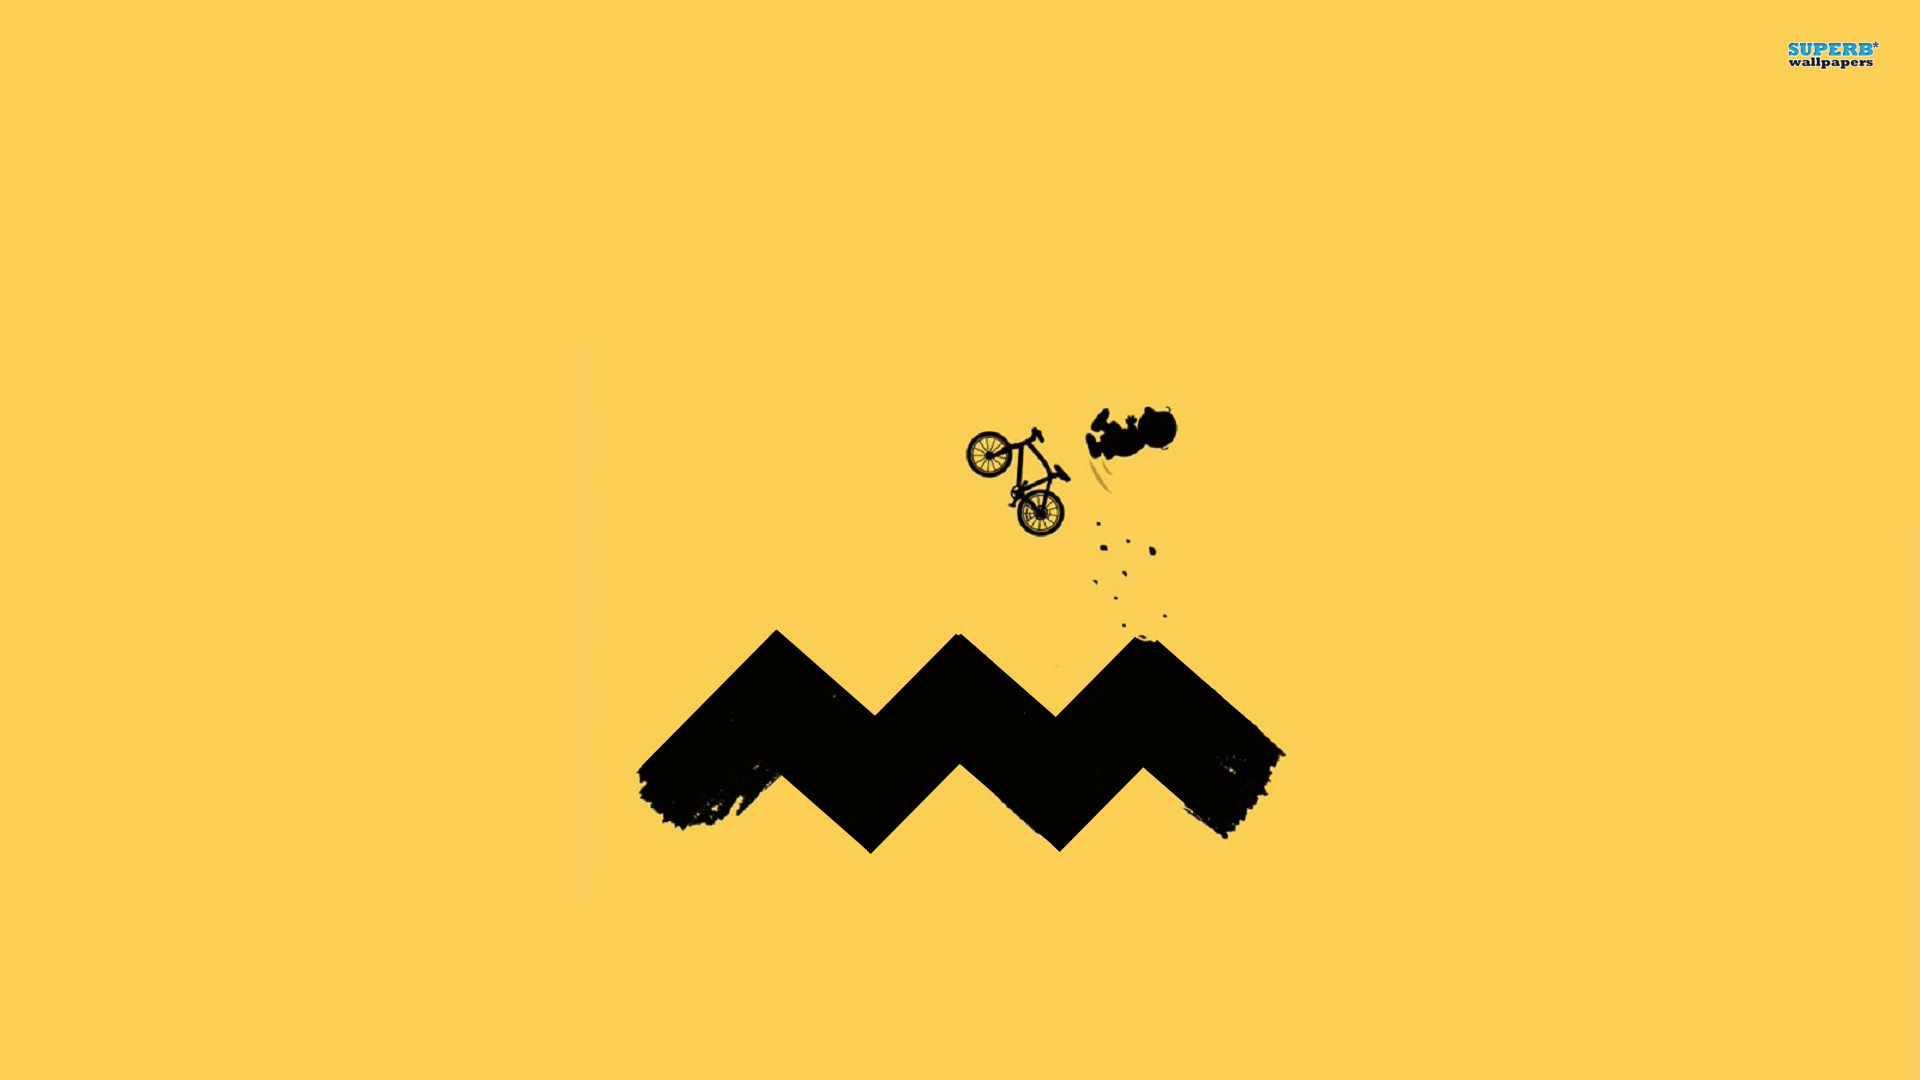 Charlie Brown cycling wallpaper 1920x1080 jpg